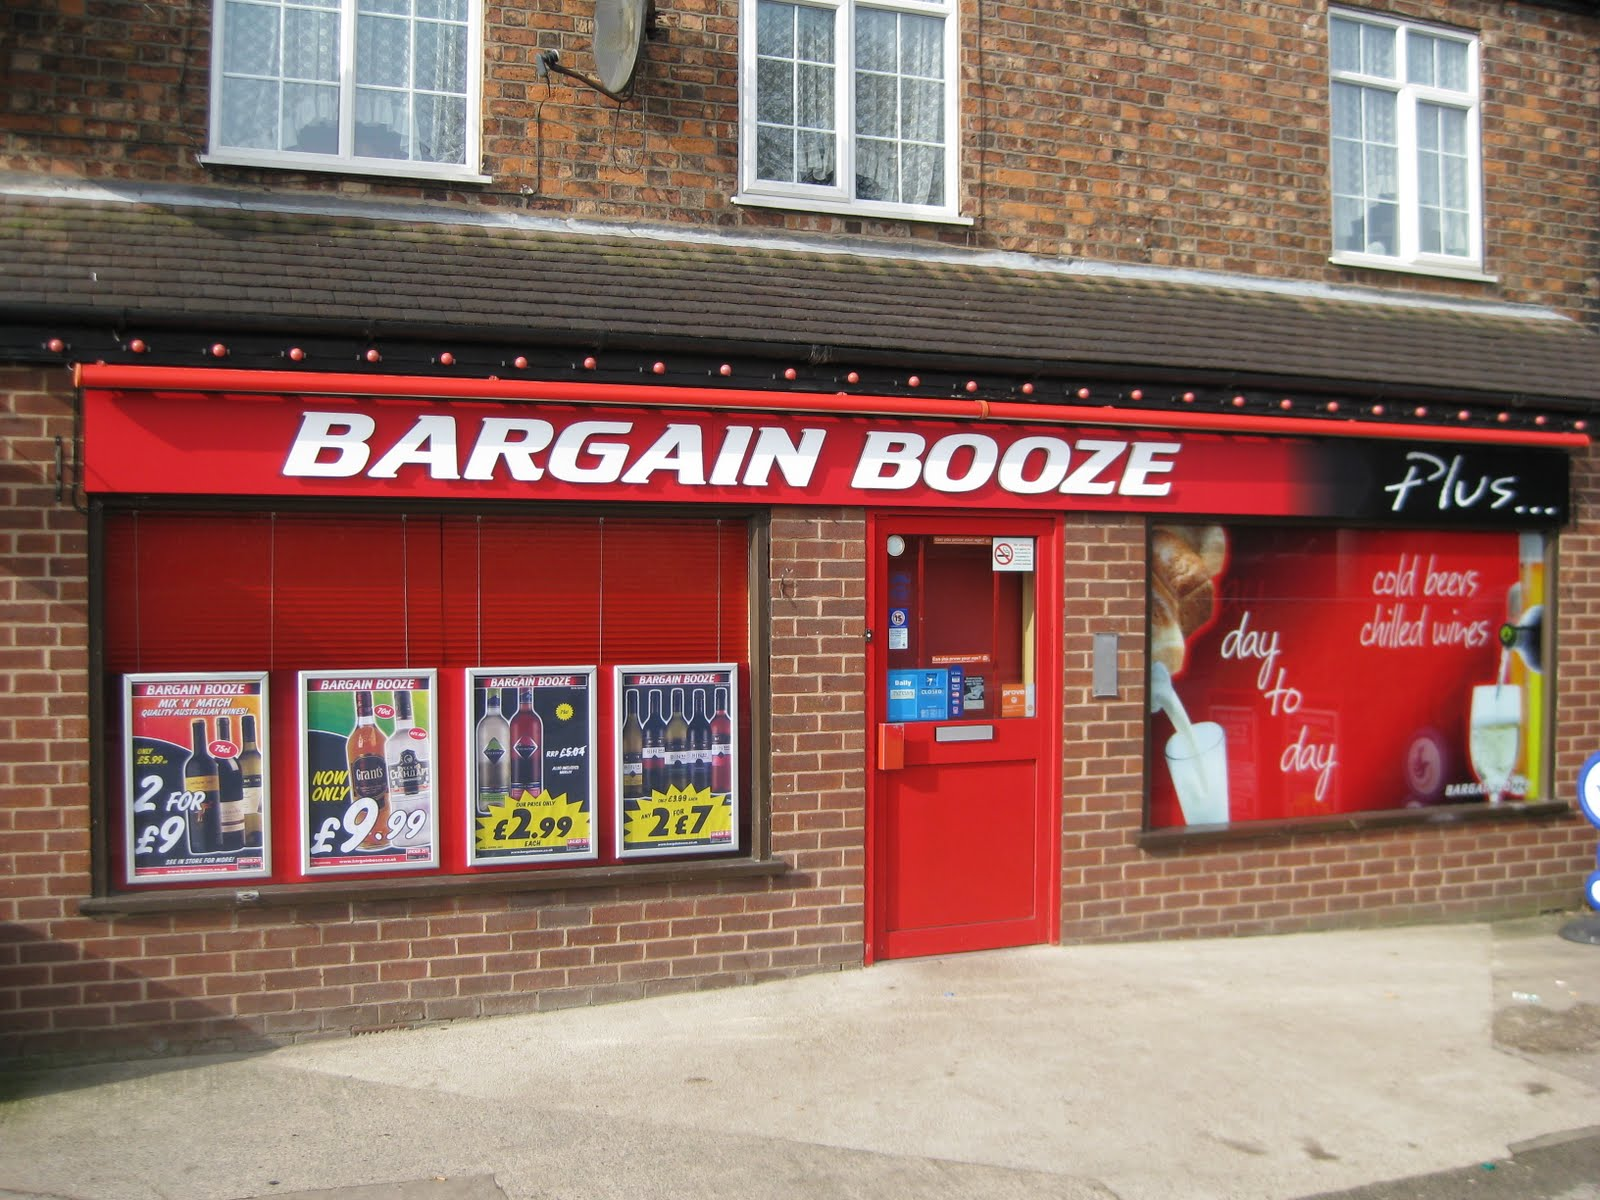 I don't think you'd be able to name a liquor chain like this in NZ